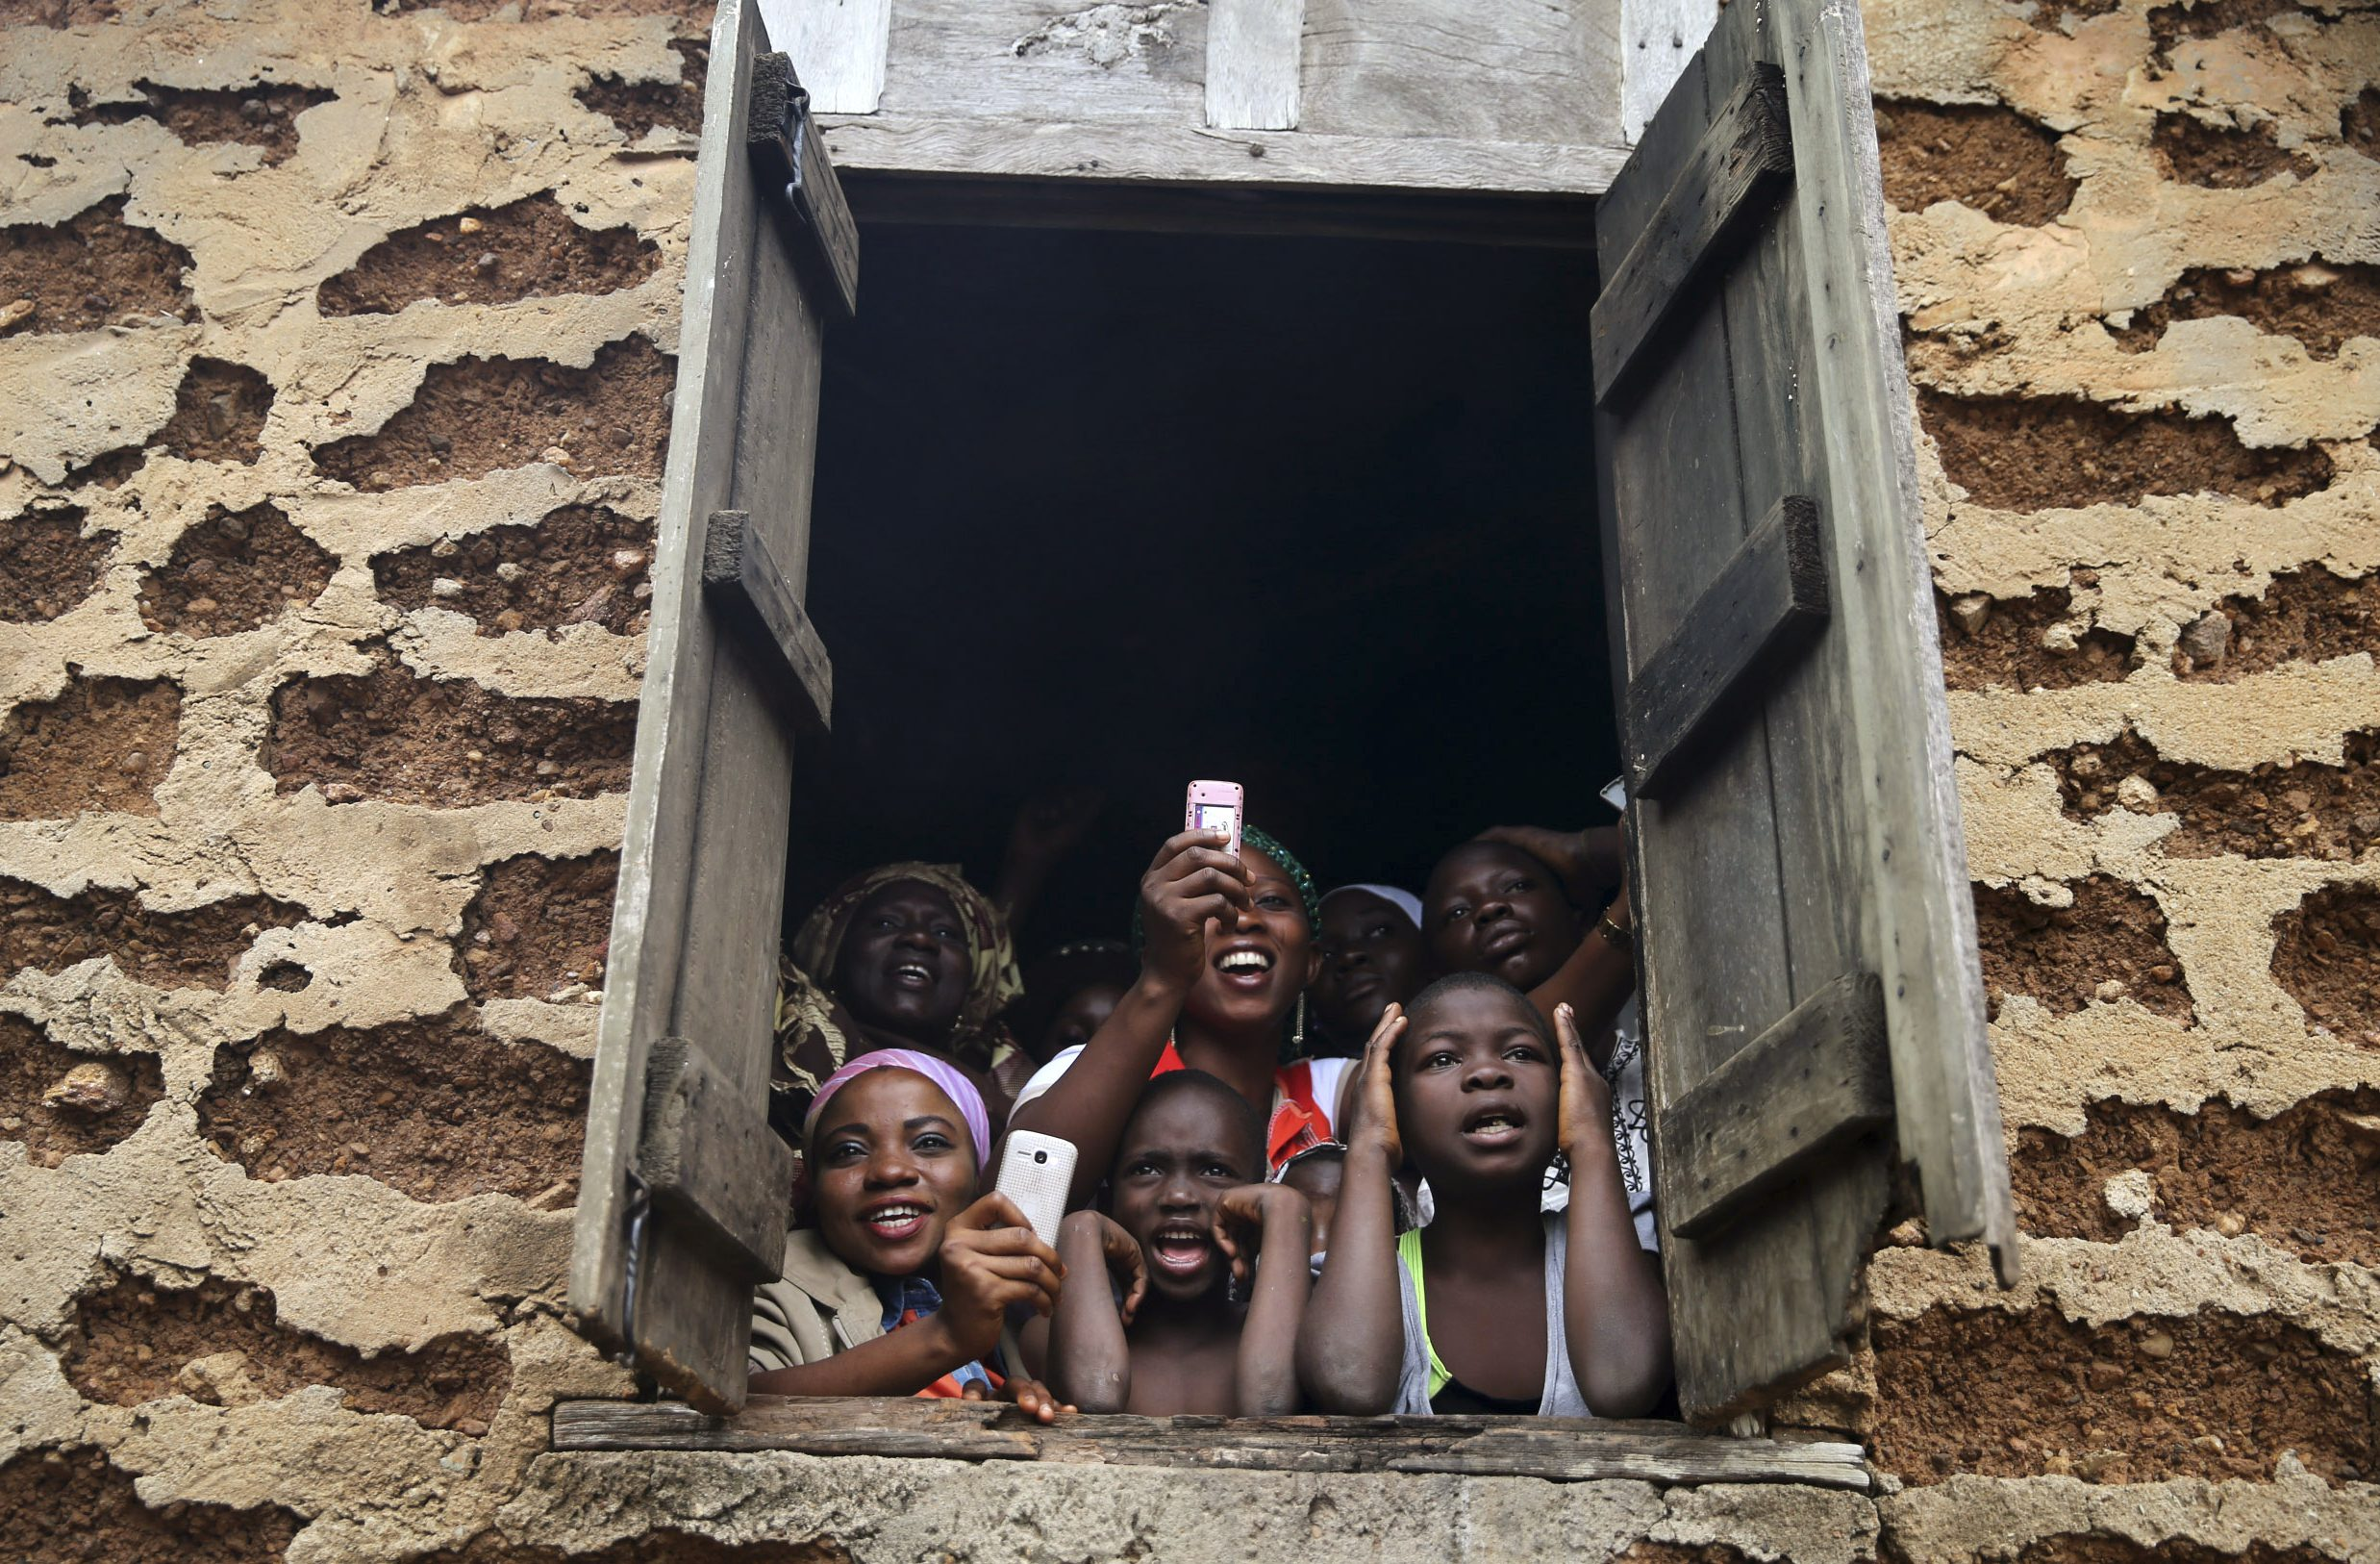 People gather at a window to watch a procession by followers of the Yoruba religion as part of a festival to celebrate the Osun river goddess in Osogbo, southwest Nigeria August 22, 2014.